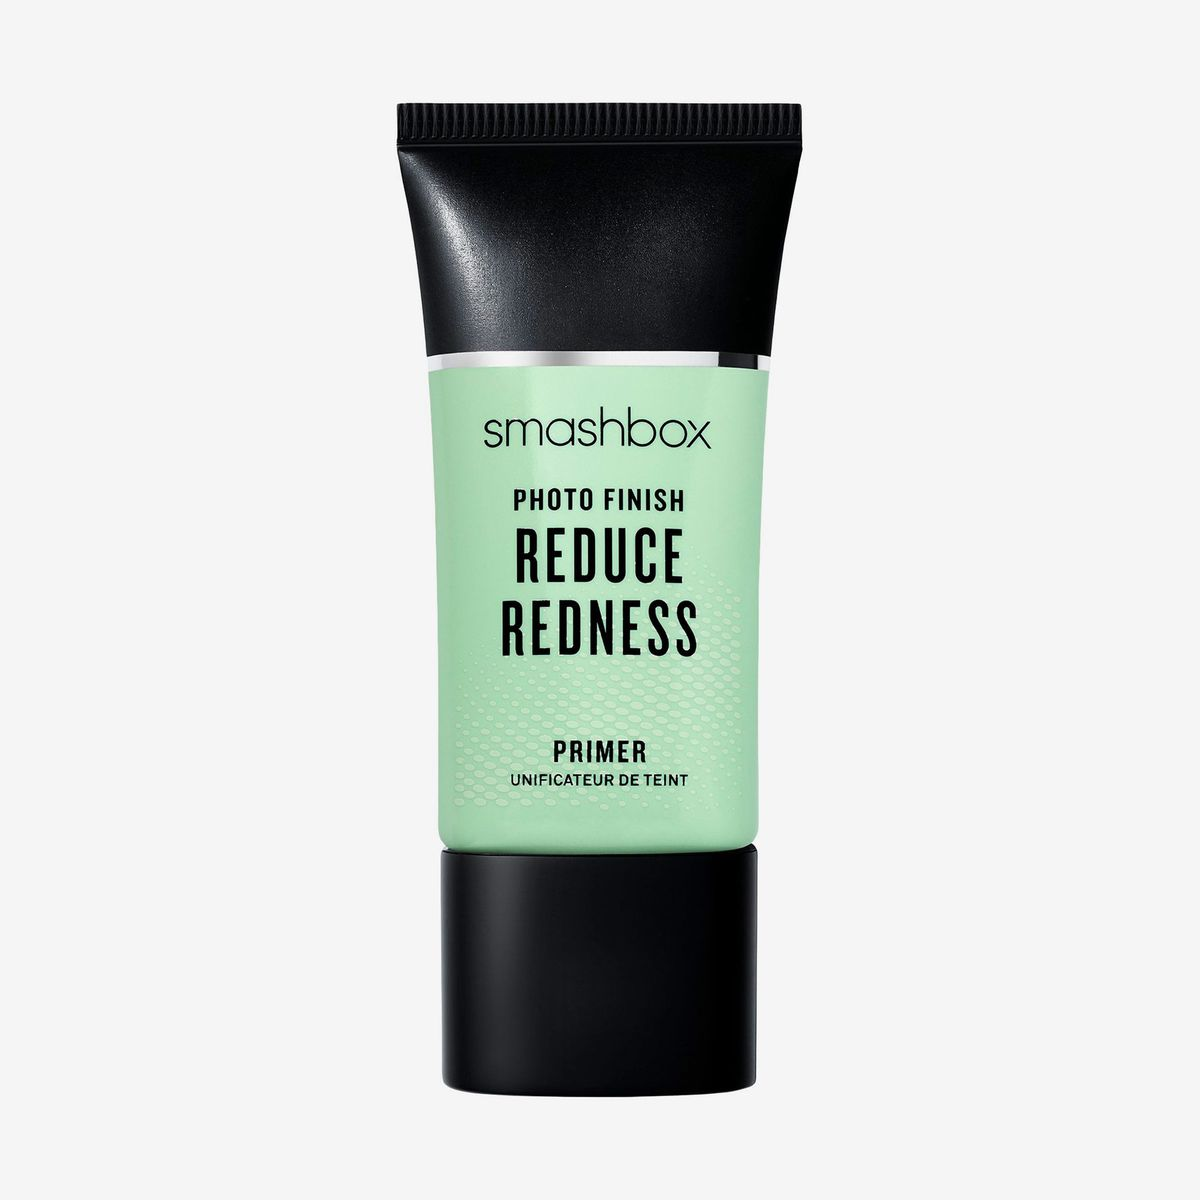 22 Best Skin Care Products For Redness And Rosacea 2020 The Strategist New York Magazine